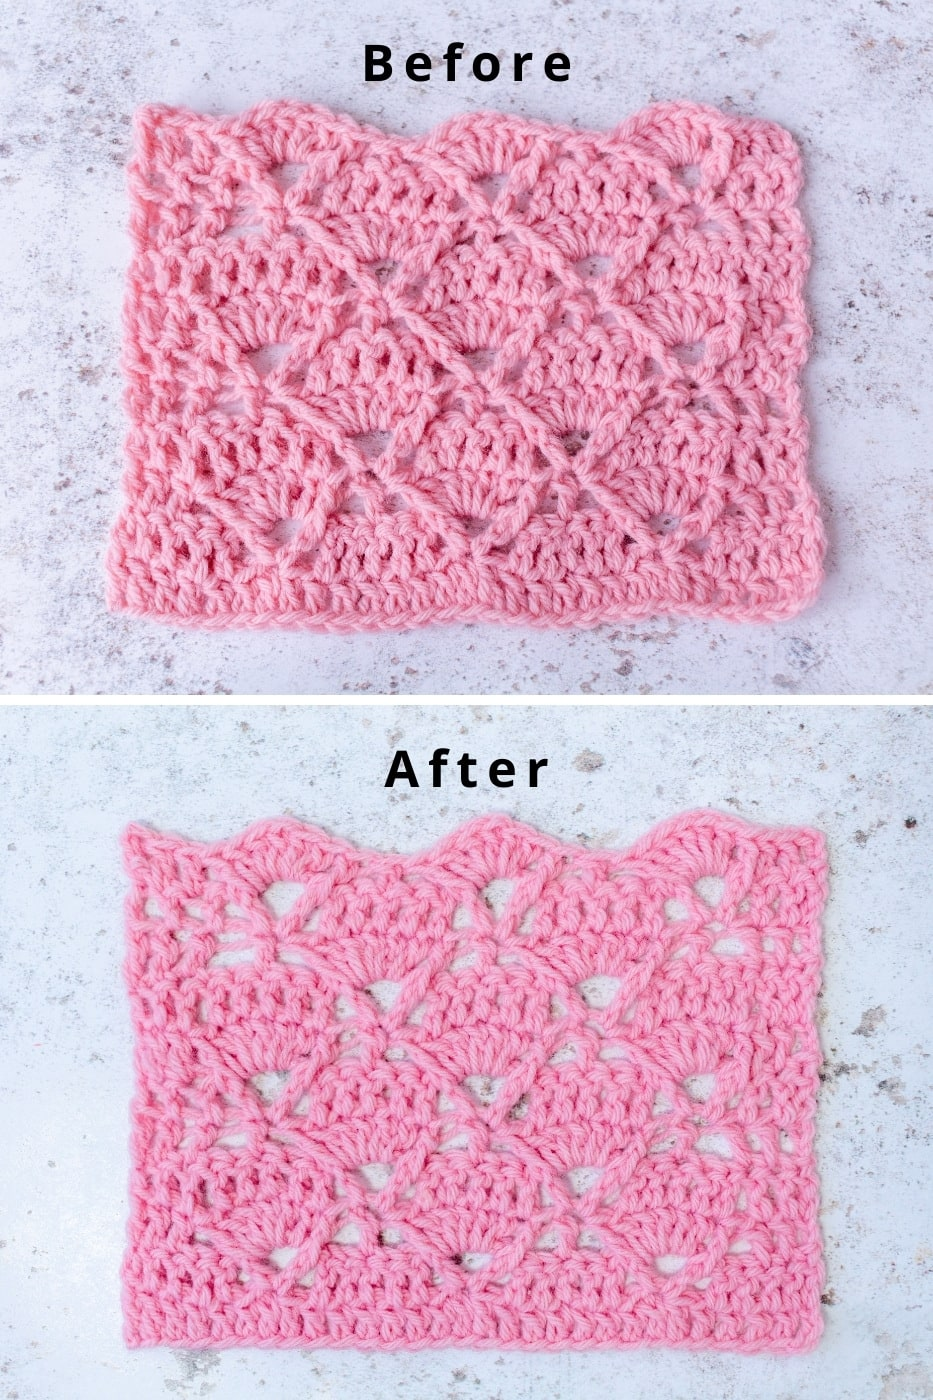 How to Block Crochet Before and After Image